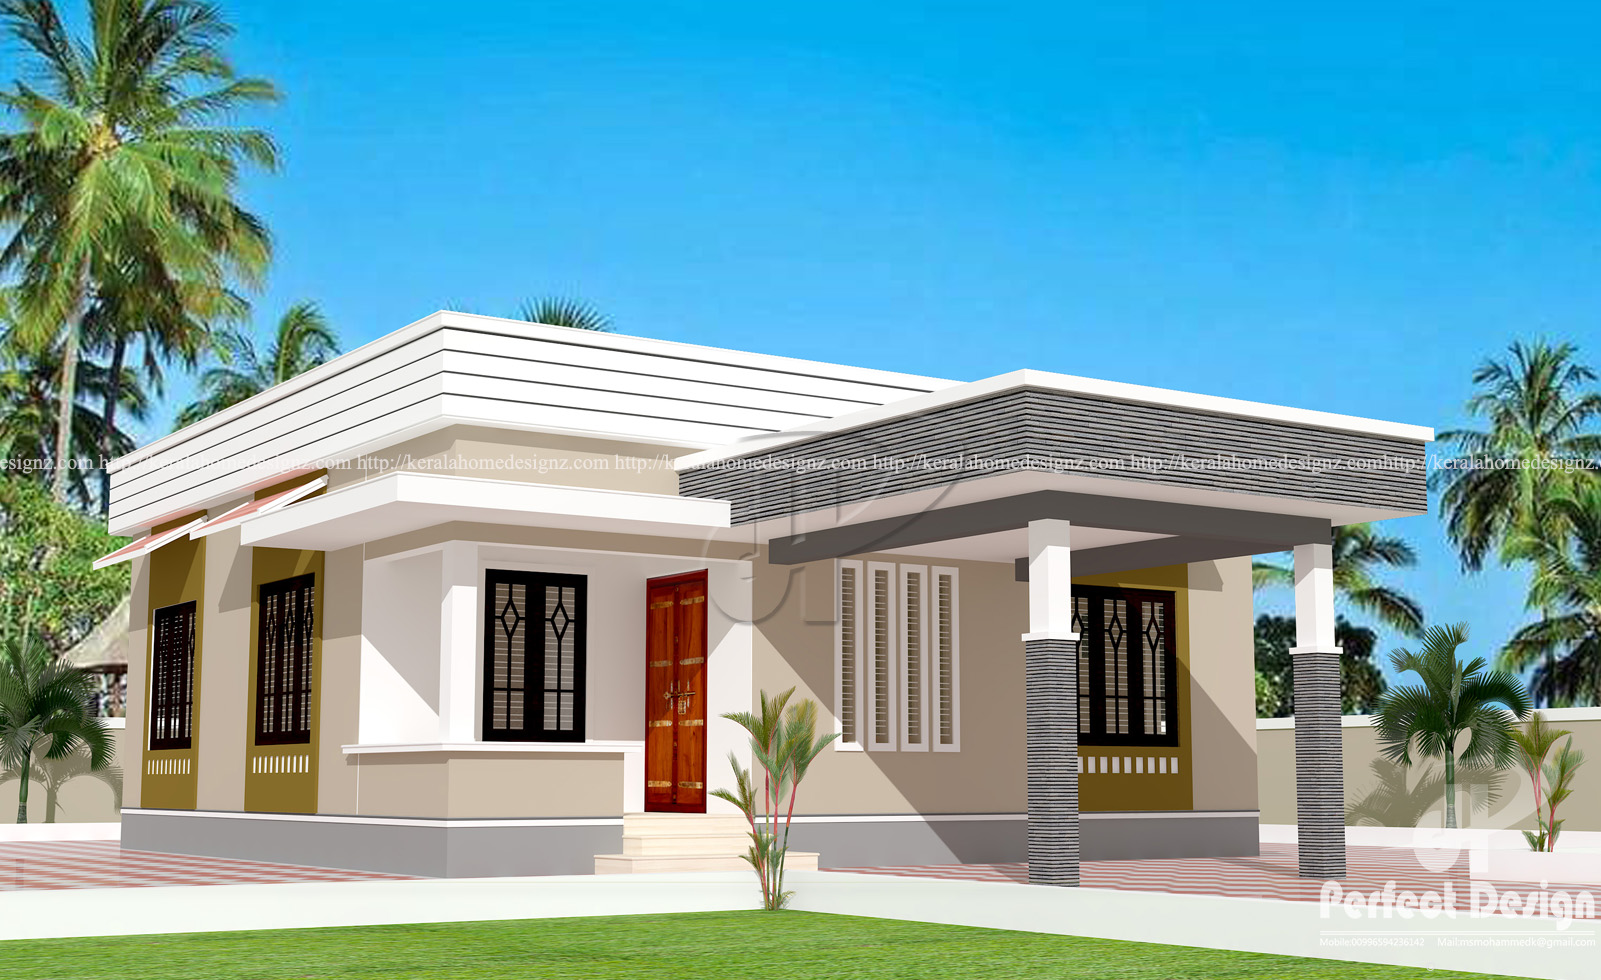 829 sq ft low cost home designs kerala home design for Home plans and designs